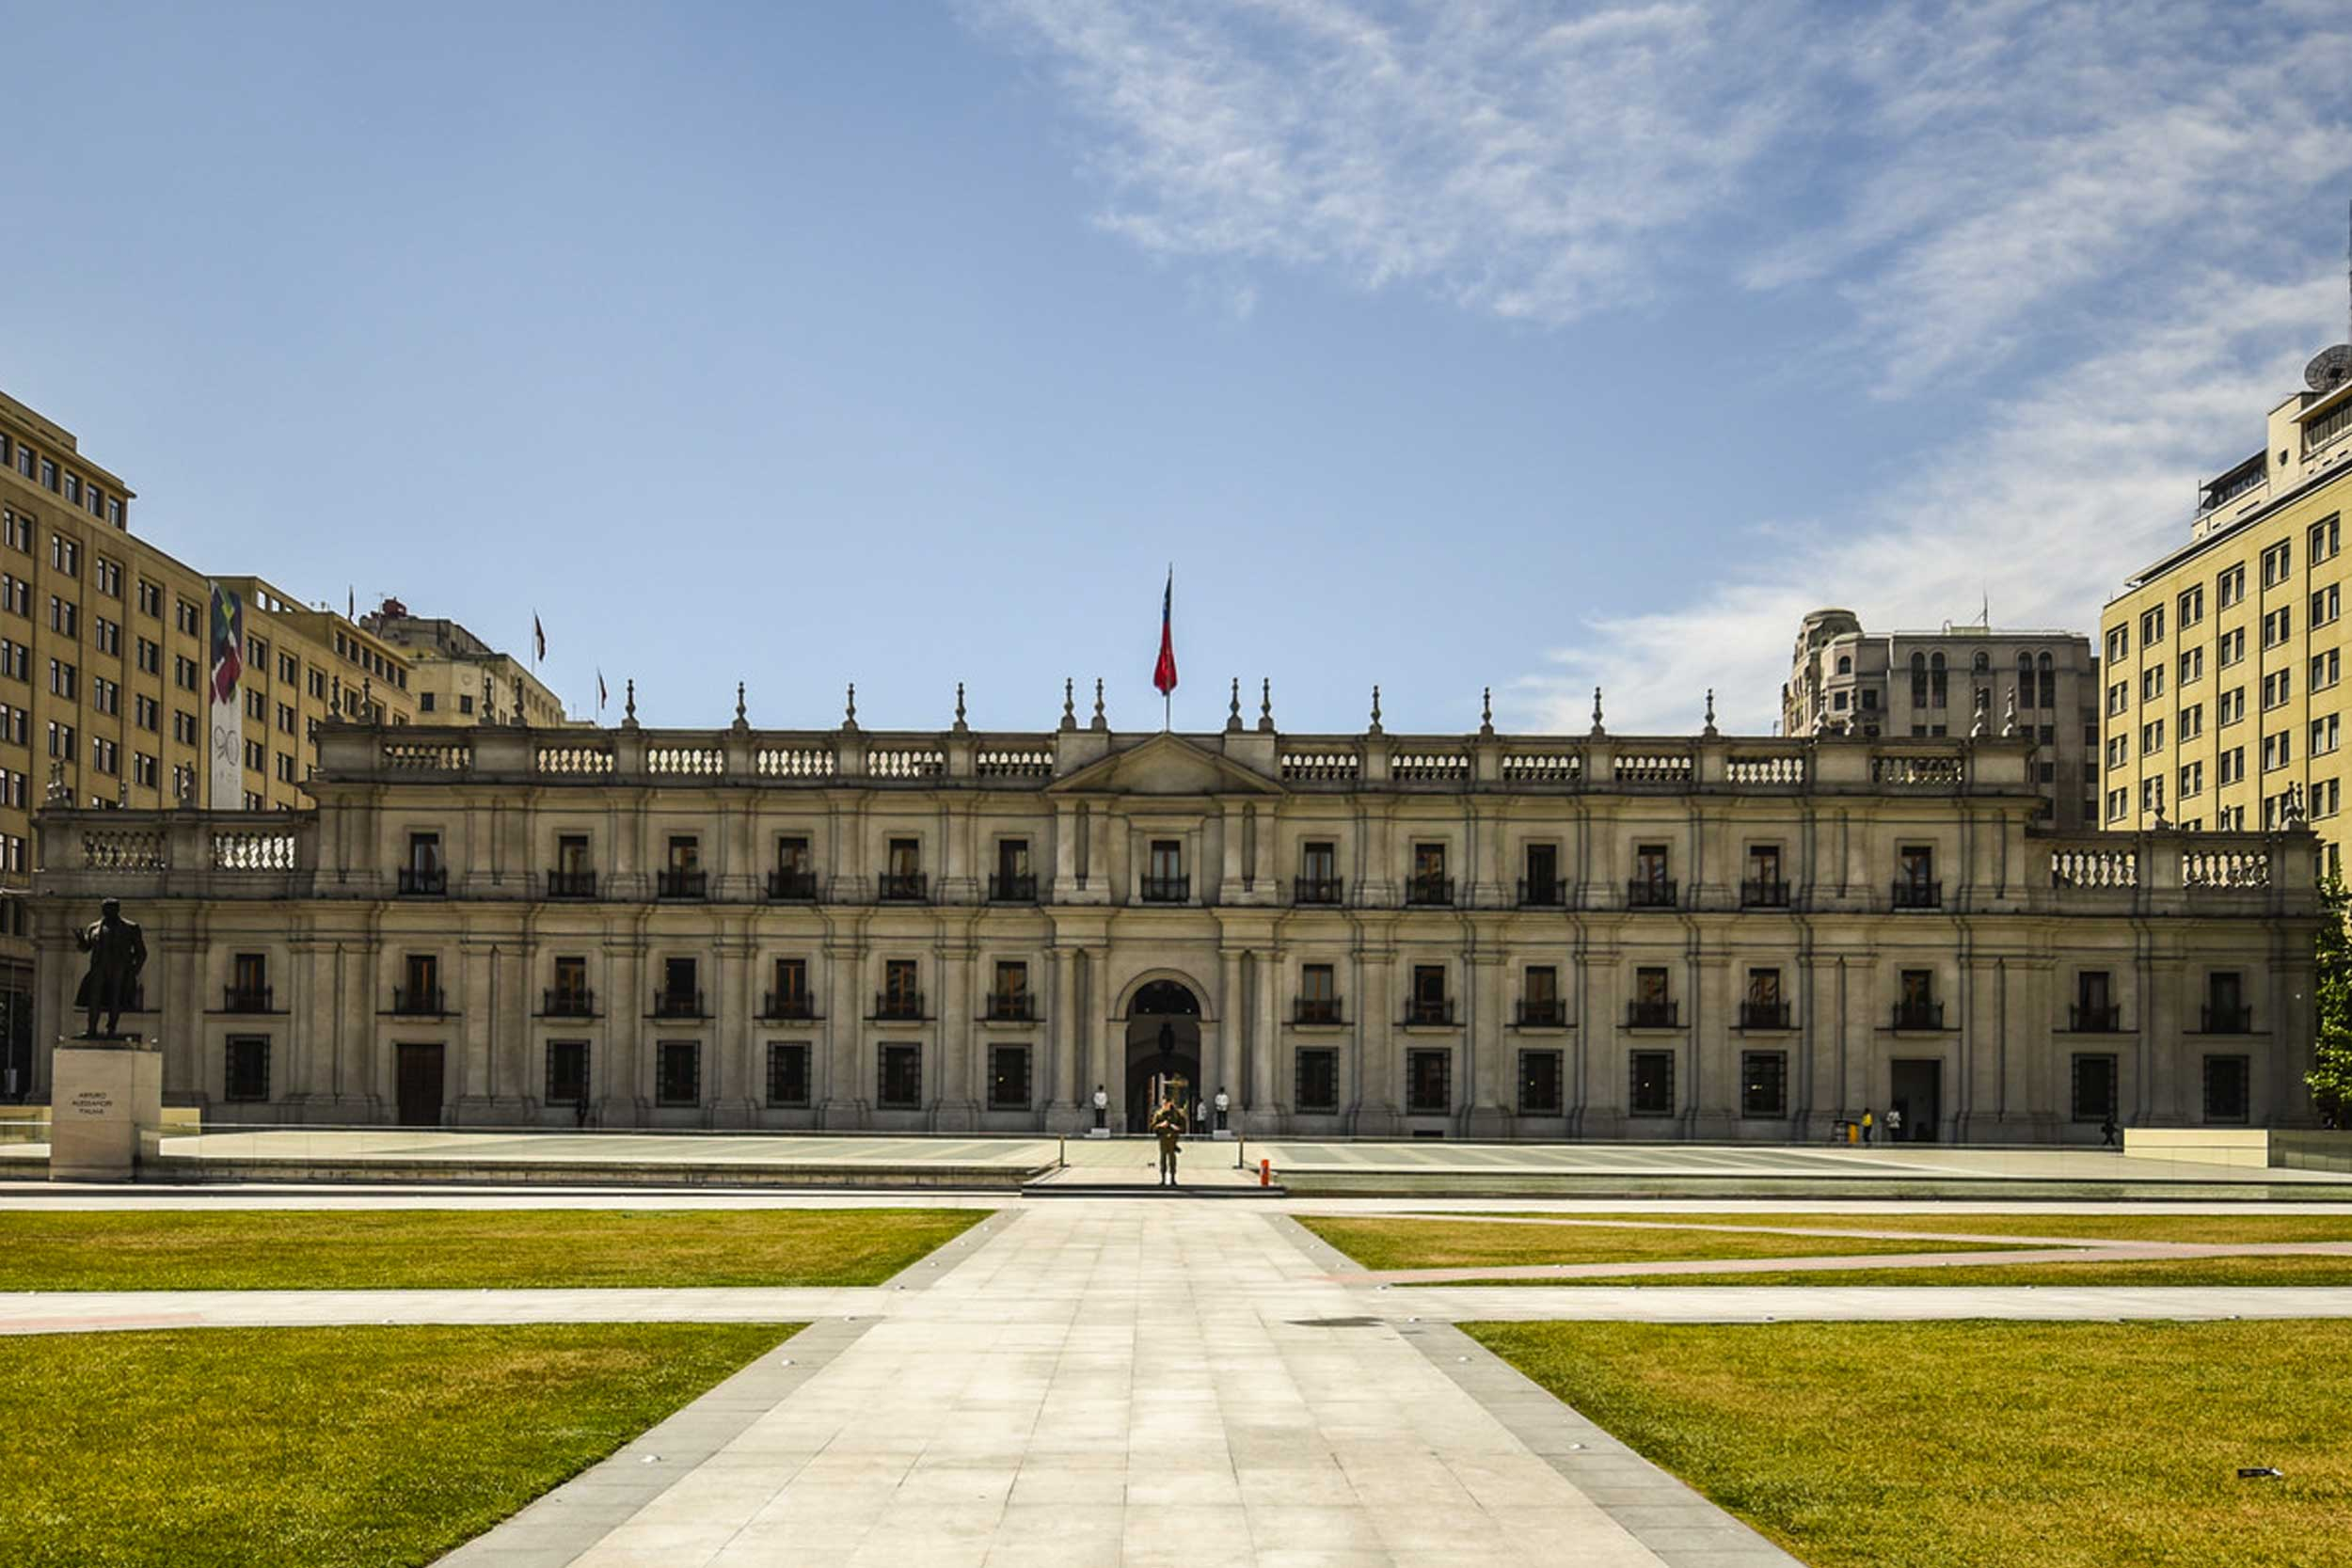 A wide, imposing colonial building in Santiago, Chile